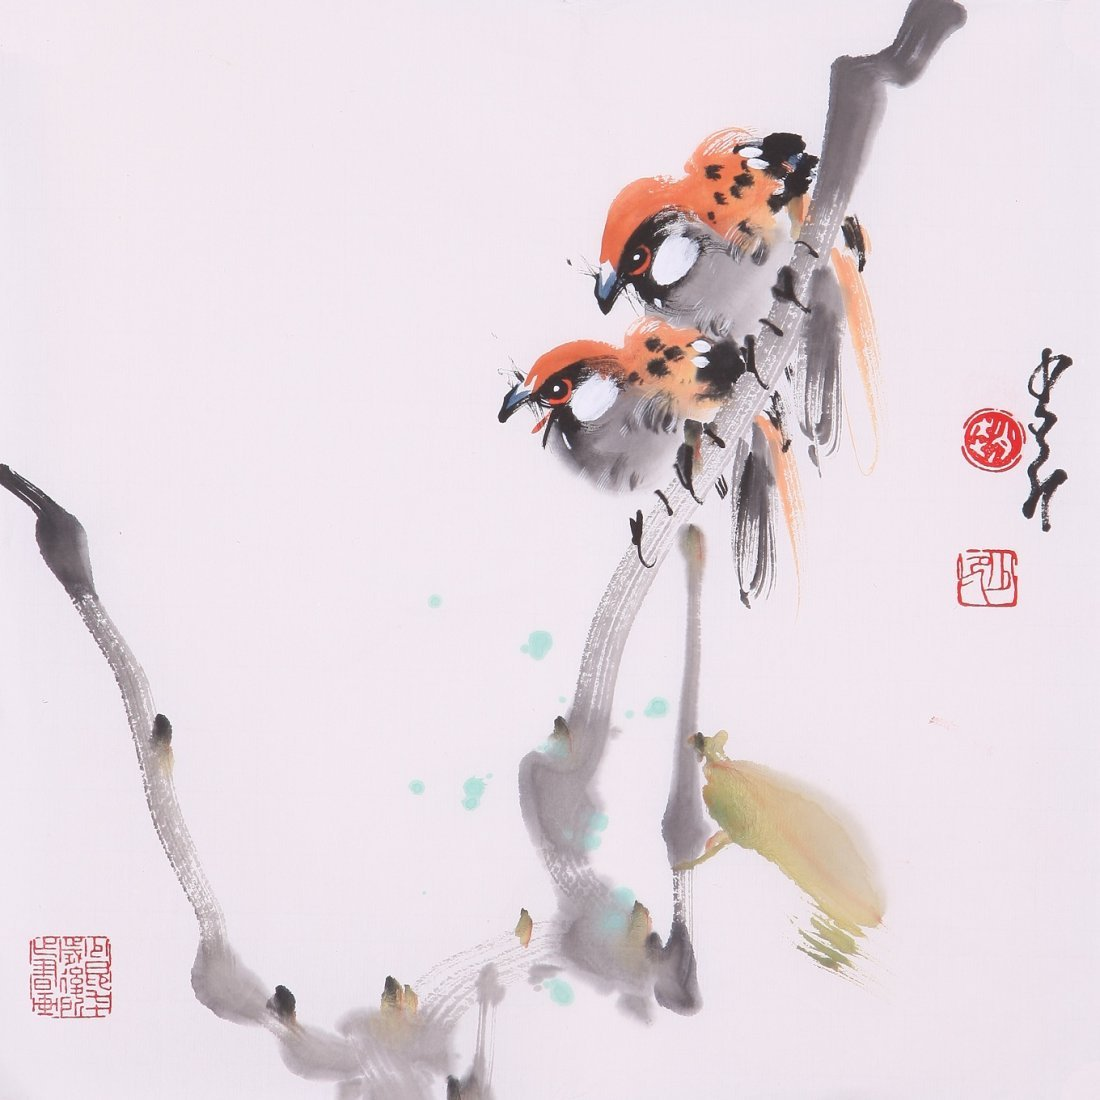 8018: Very fine chinese painting by Zhao Shaoang